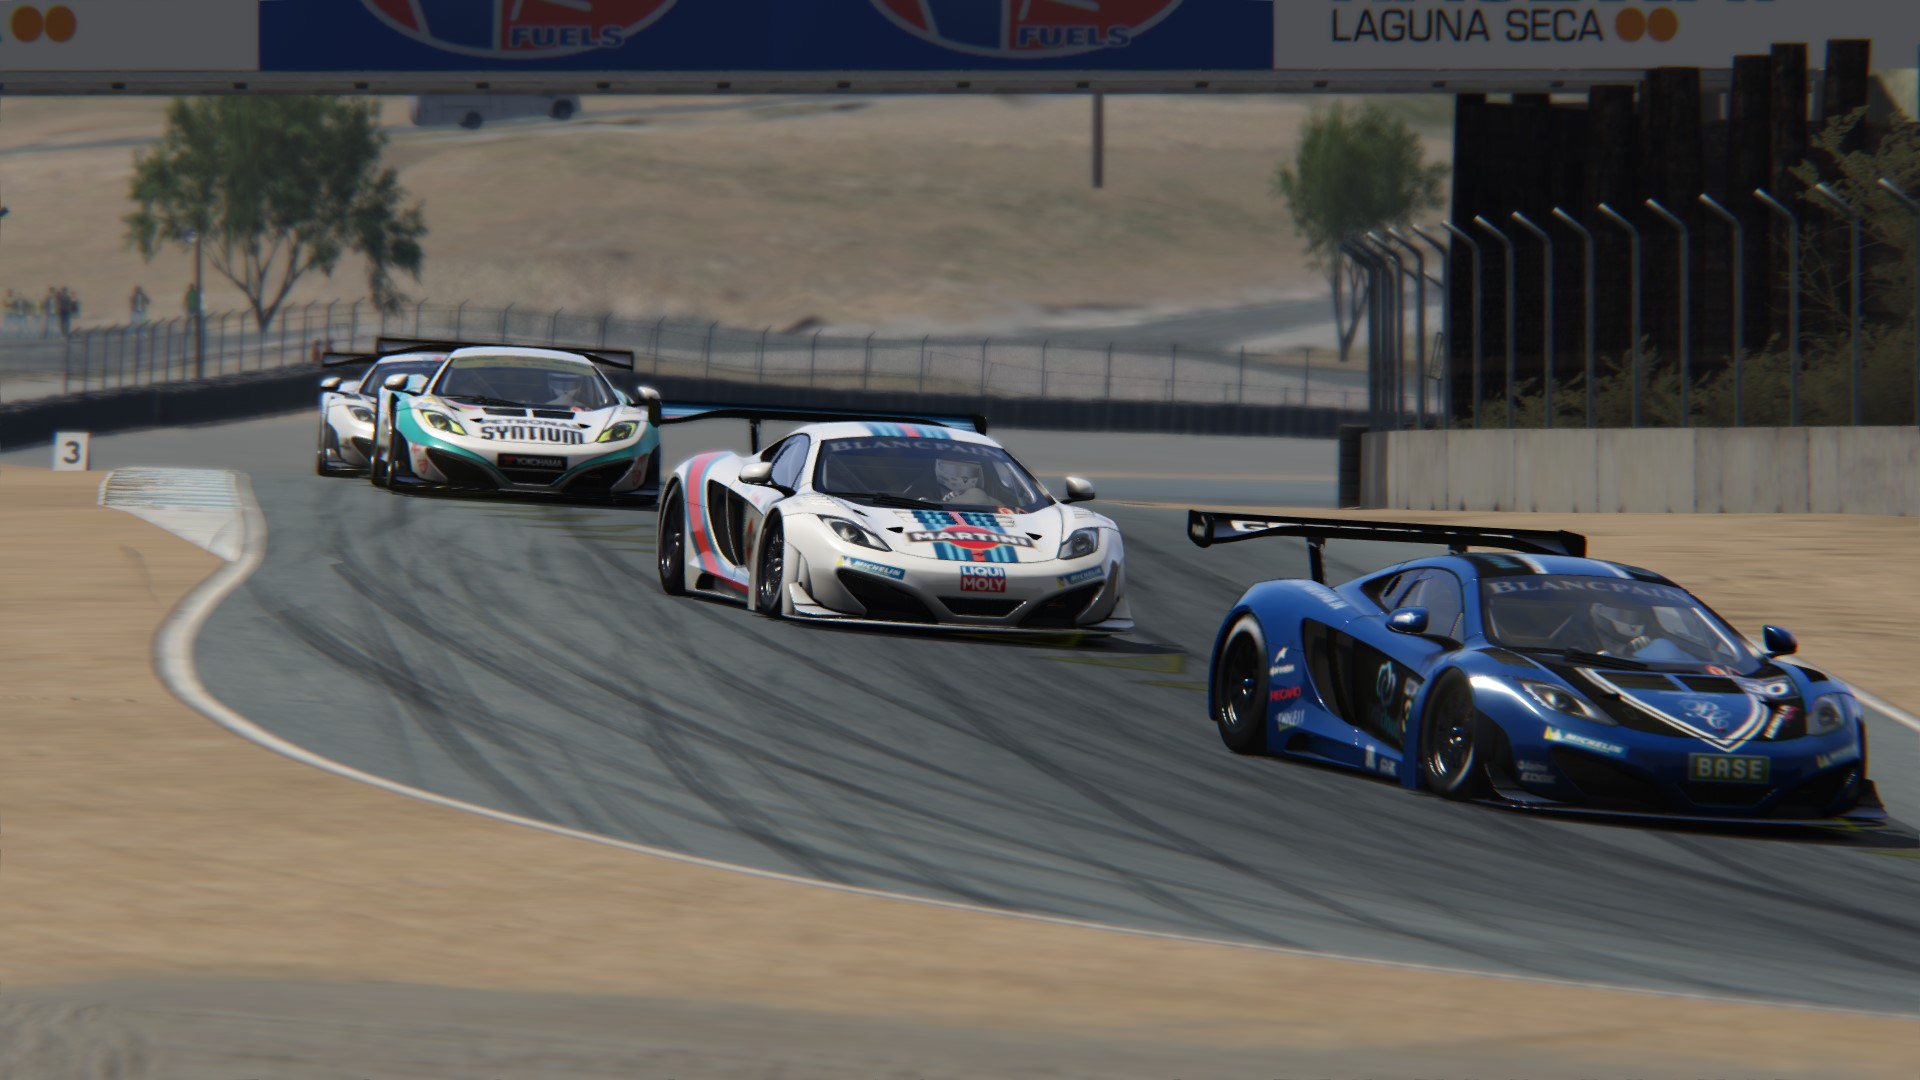 Screenshot_mclaren_mp412c_gt3_ks_laguna_seca_23-12-117-15-19-18.jpg